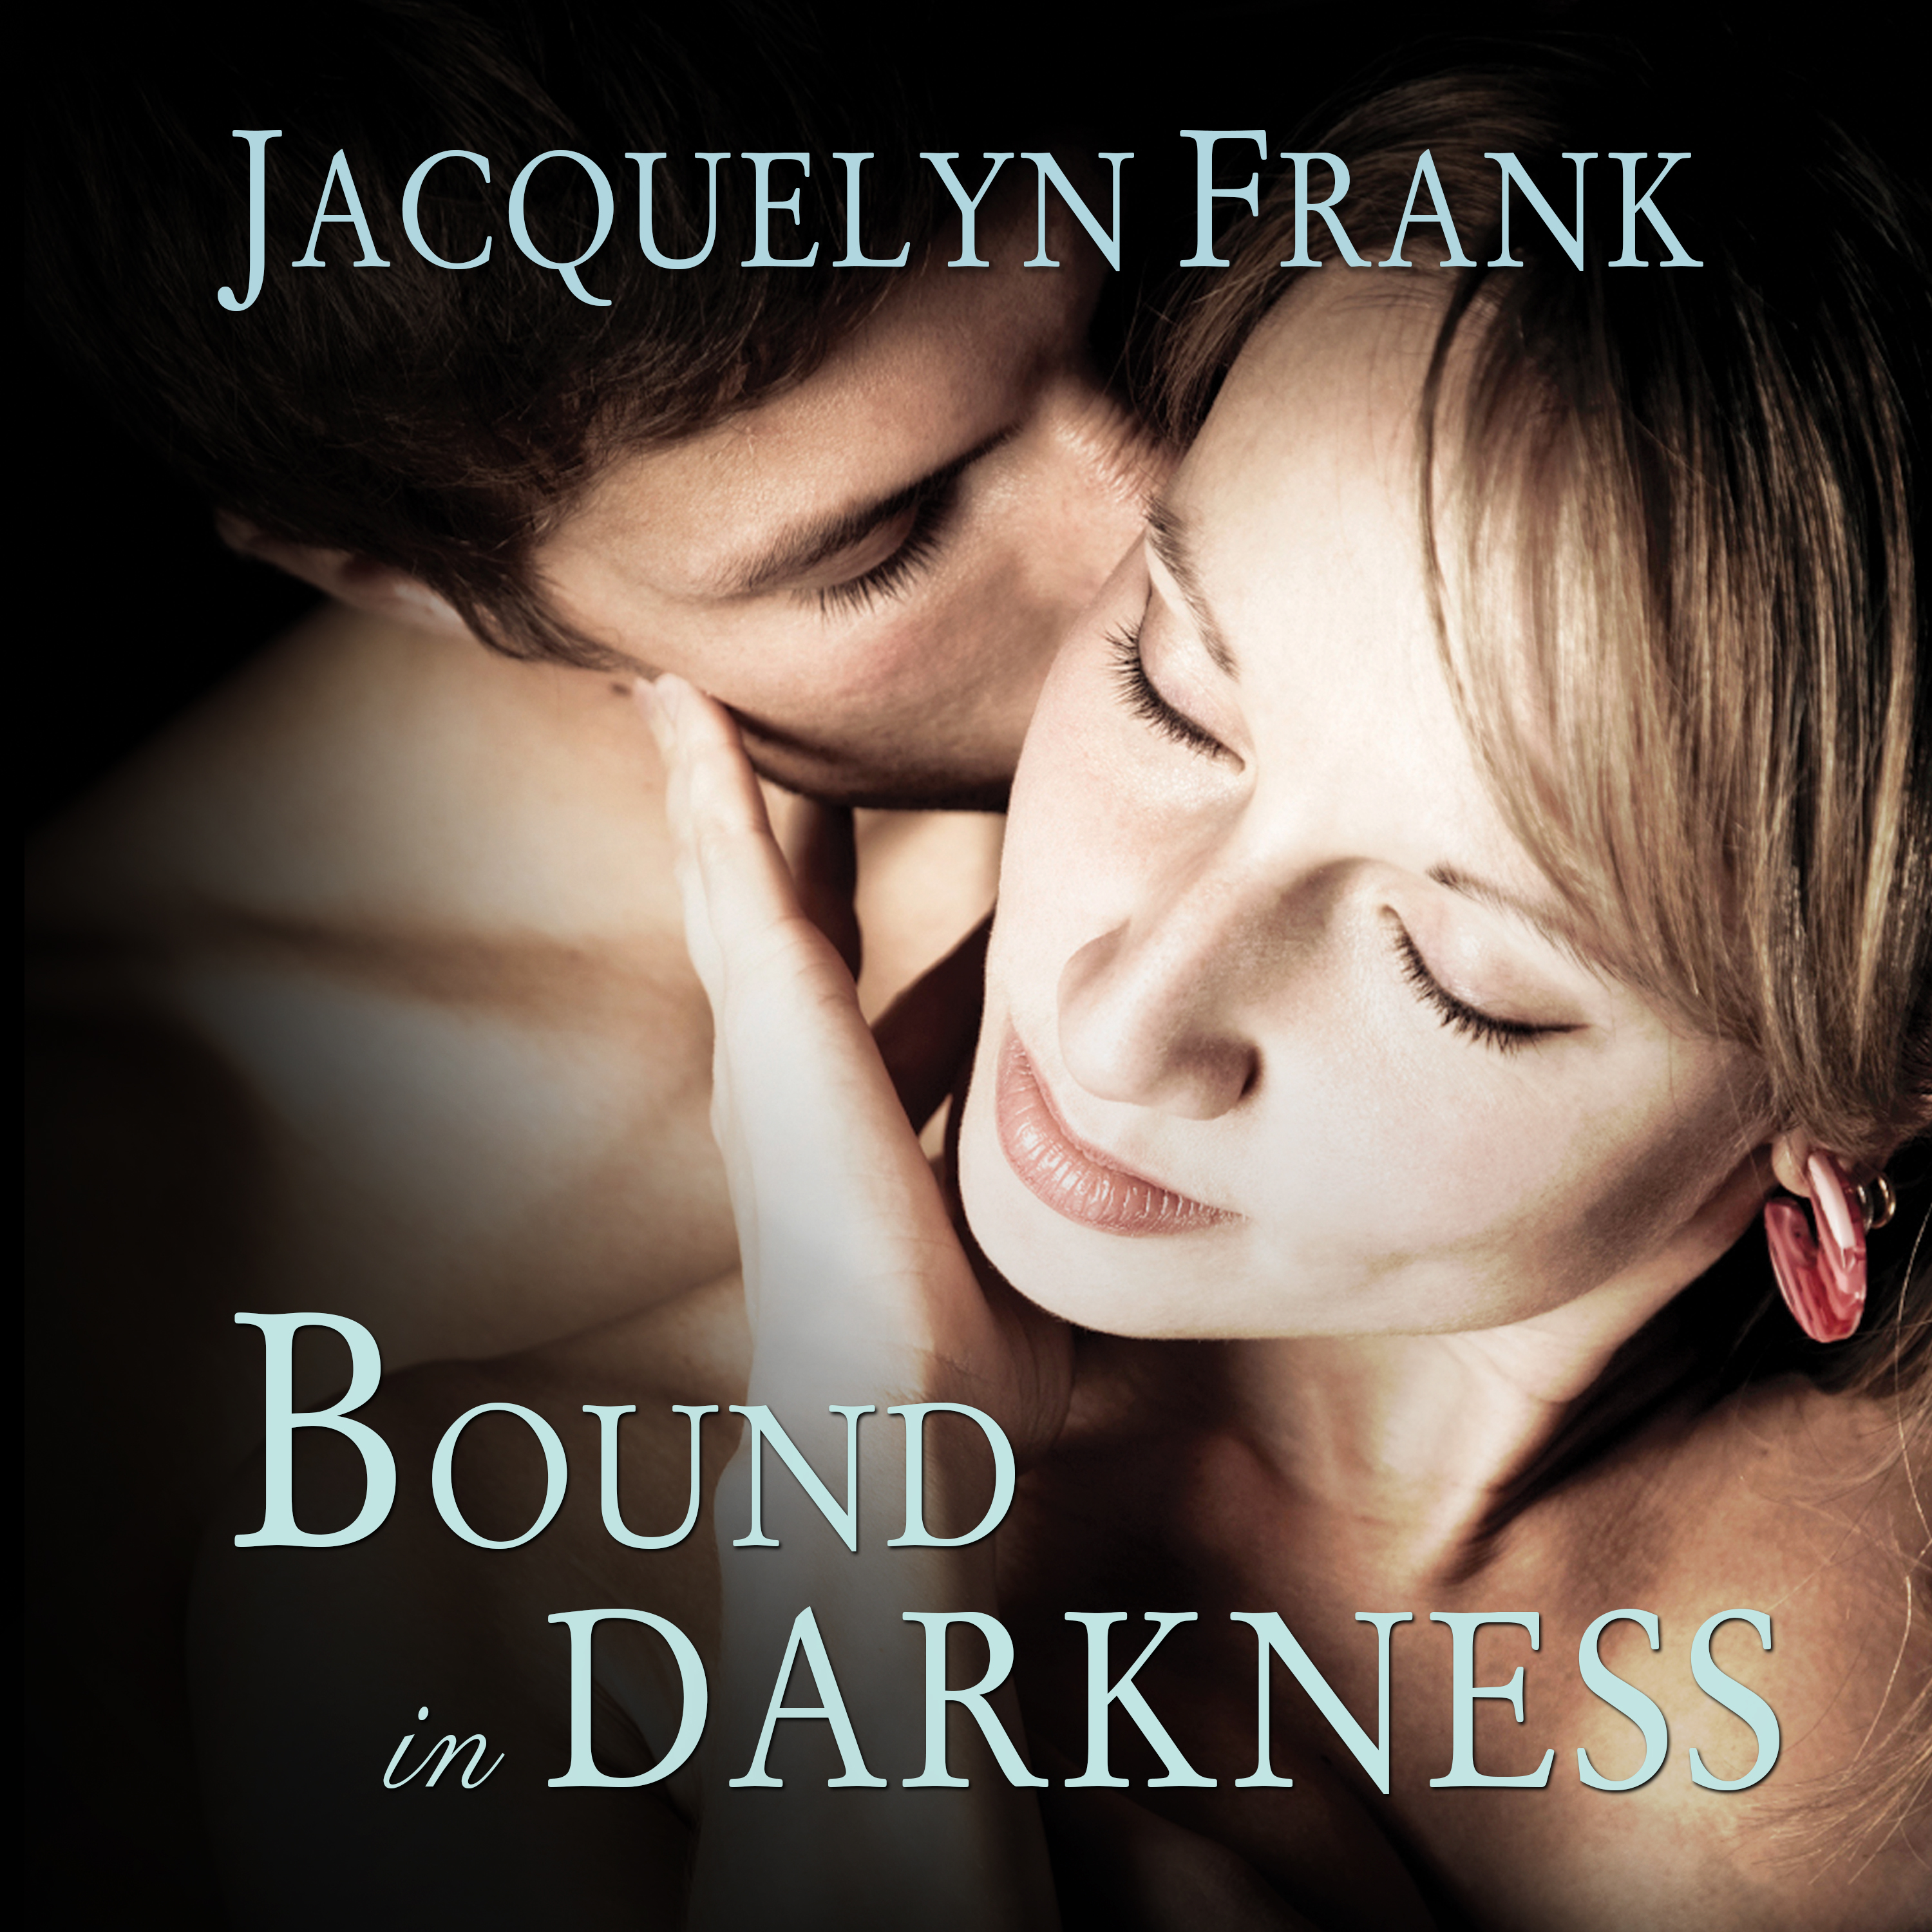 Printable Bound In Darkness Audiobook Cover Art